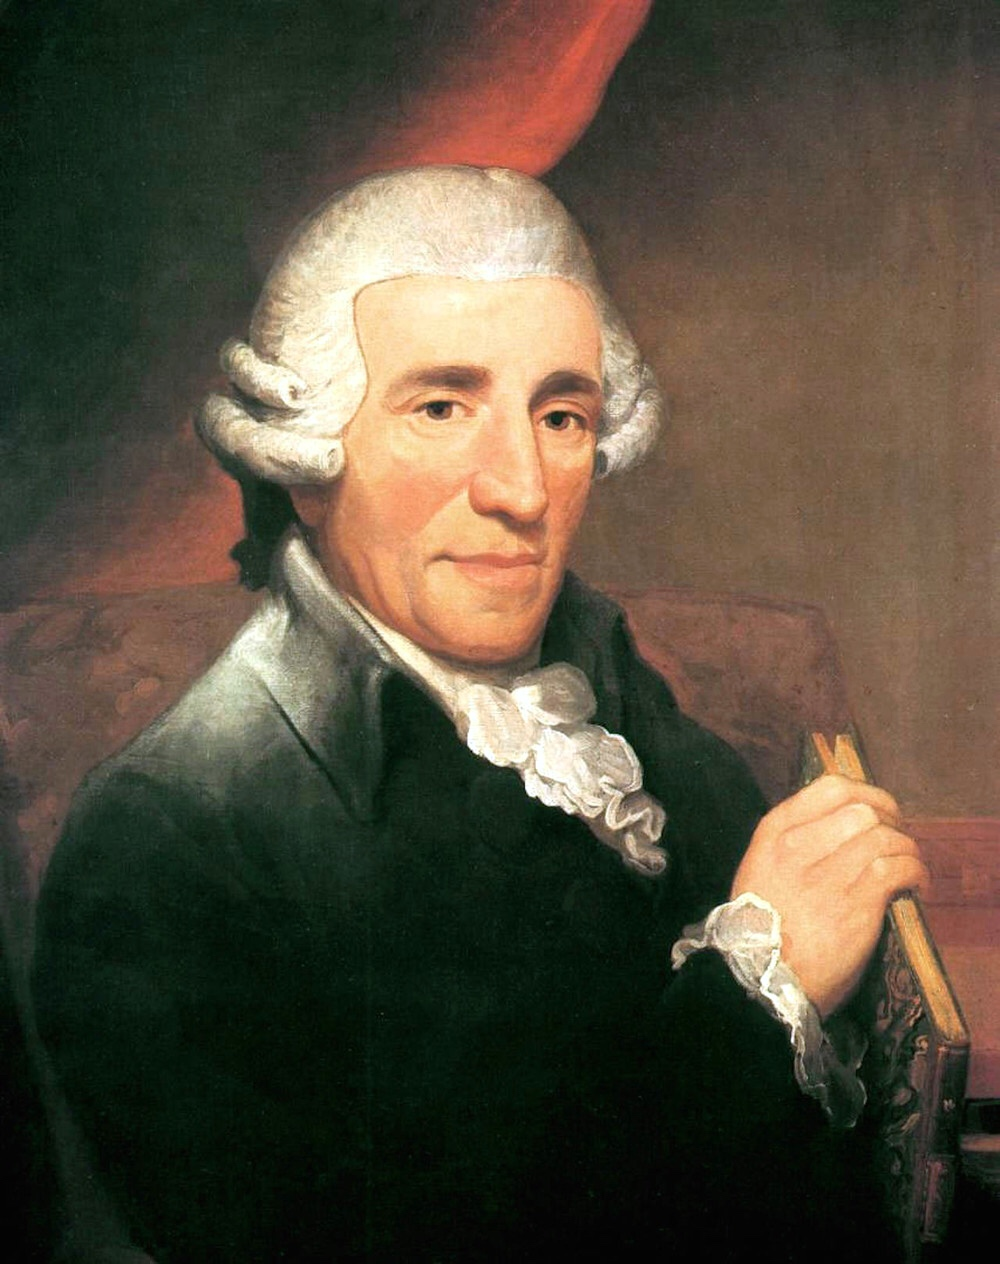 https://upload.wikimedia.org/wikipedia/commons/0/05/Joseph_Haydn.jpg